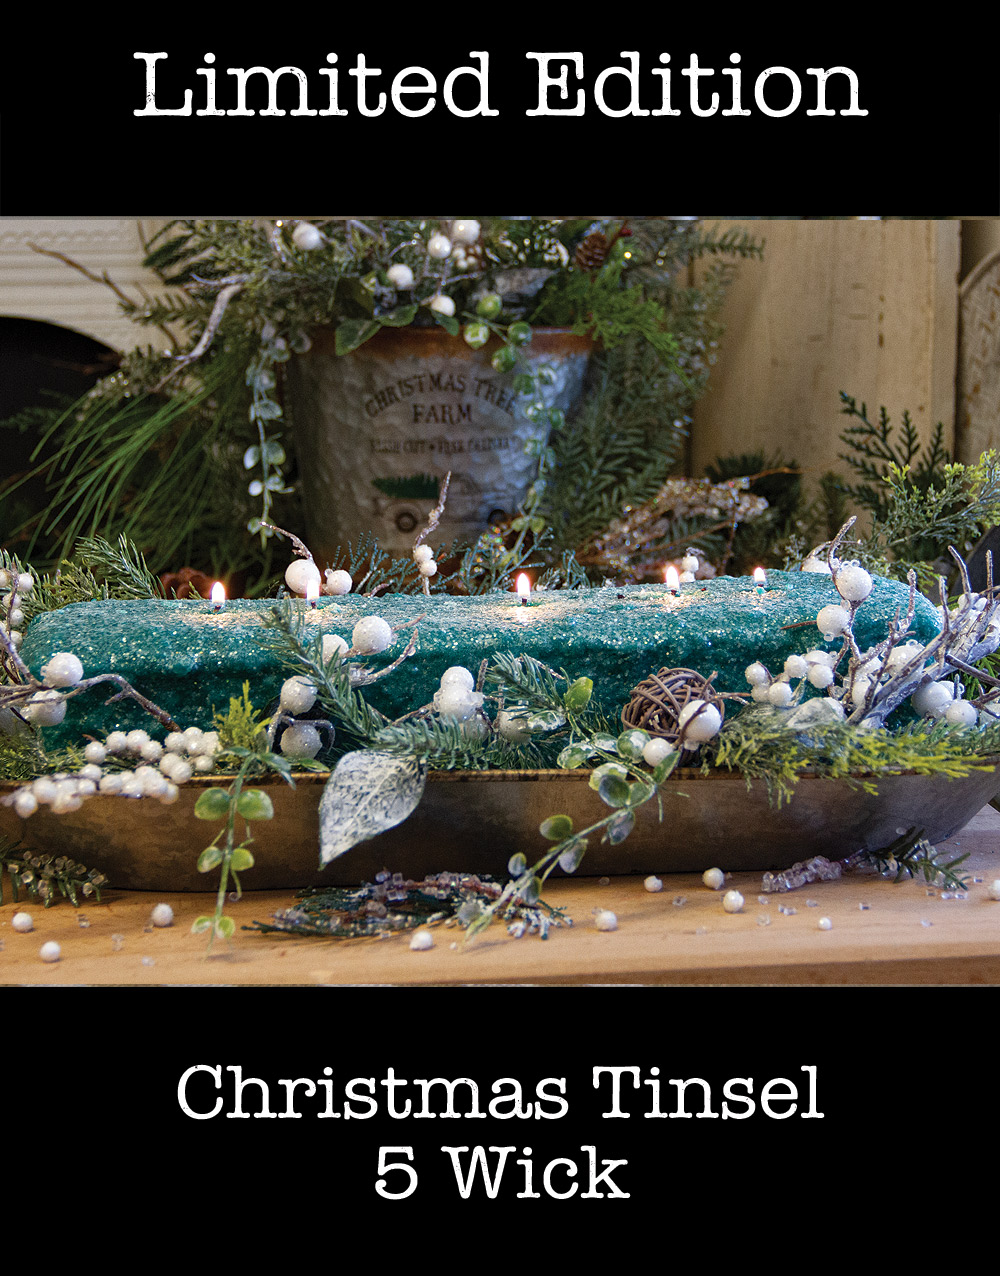 Holiday Edition 5 Wick Loaf Candle – Christmas Tinsel